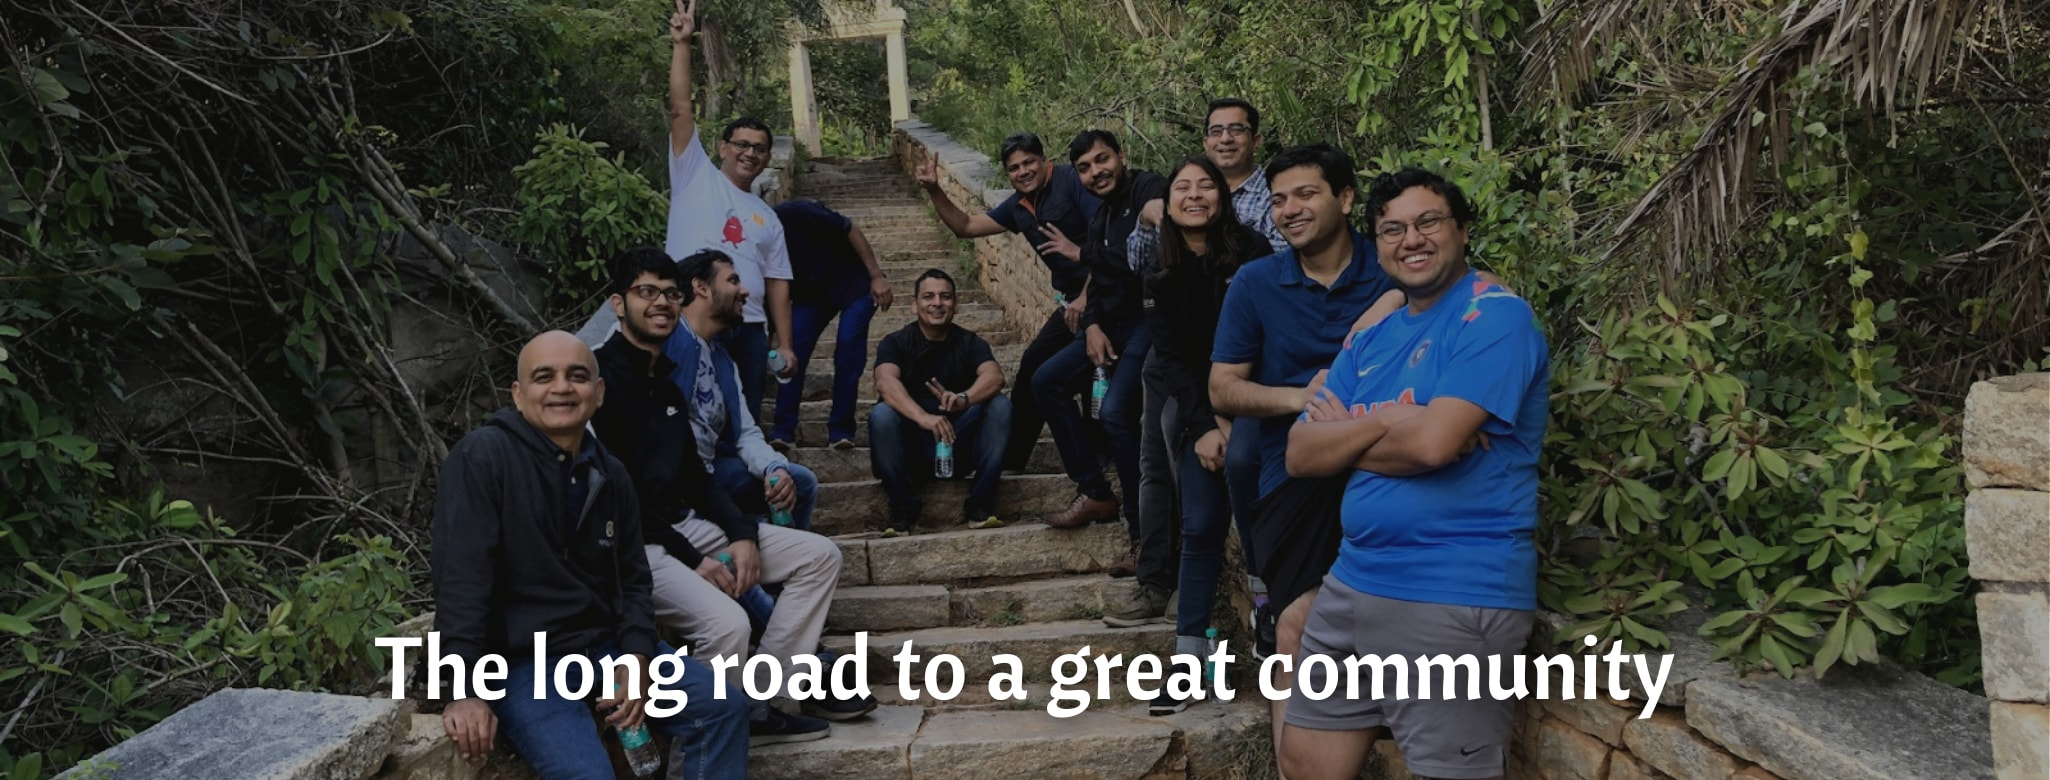 The long road to a great community - Accel's journey to building a Entrepreneurial Community in India